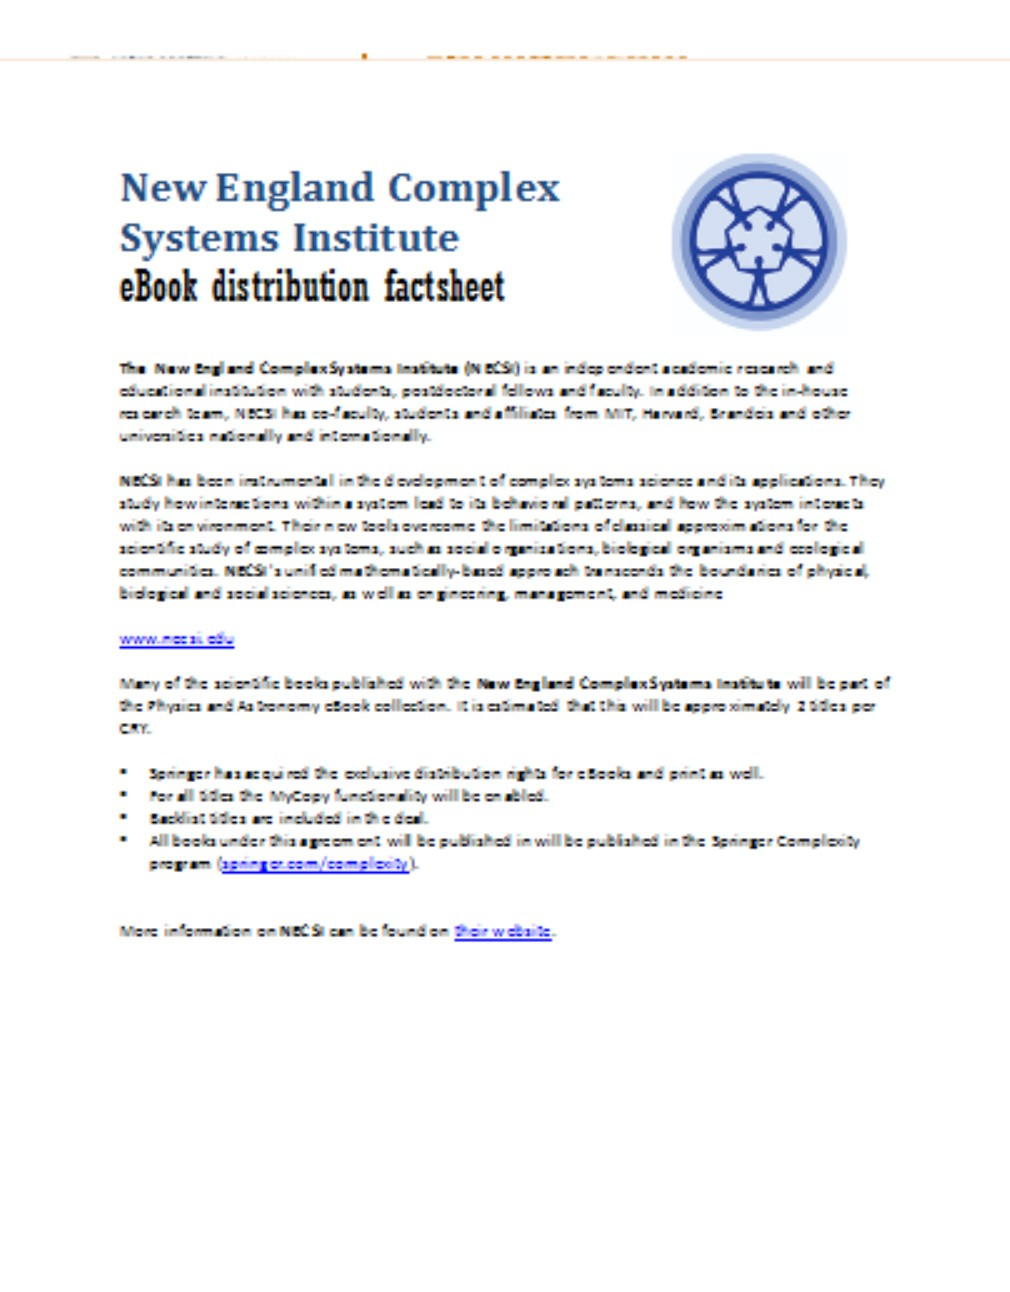 New England Complex Systems Institute